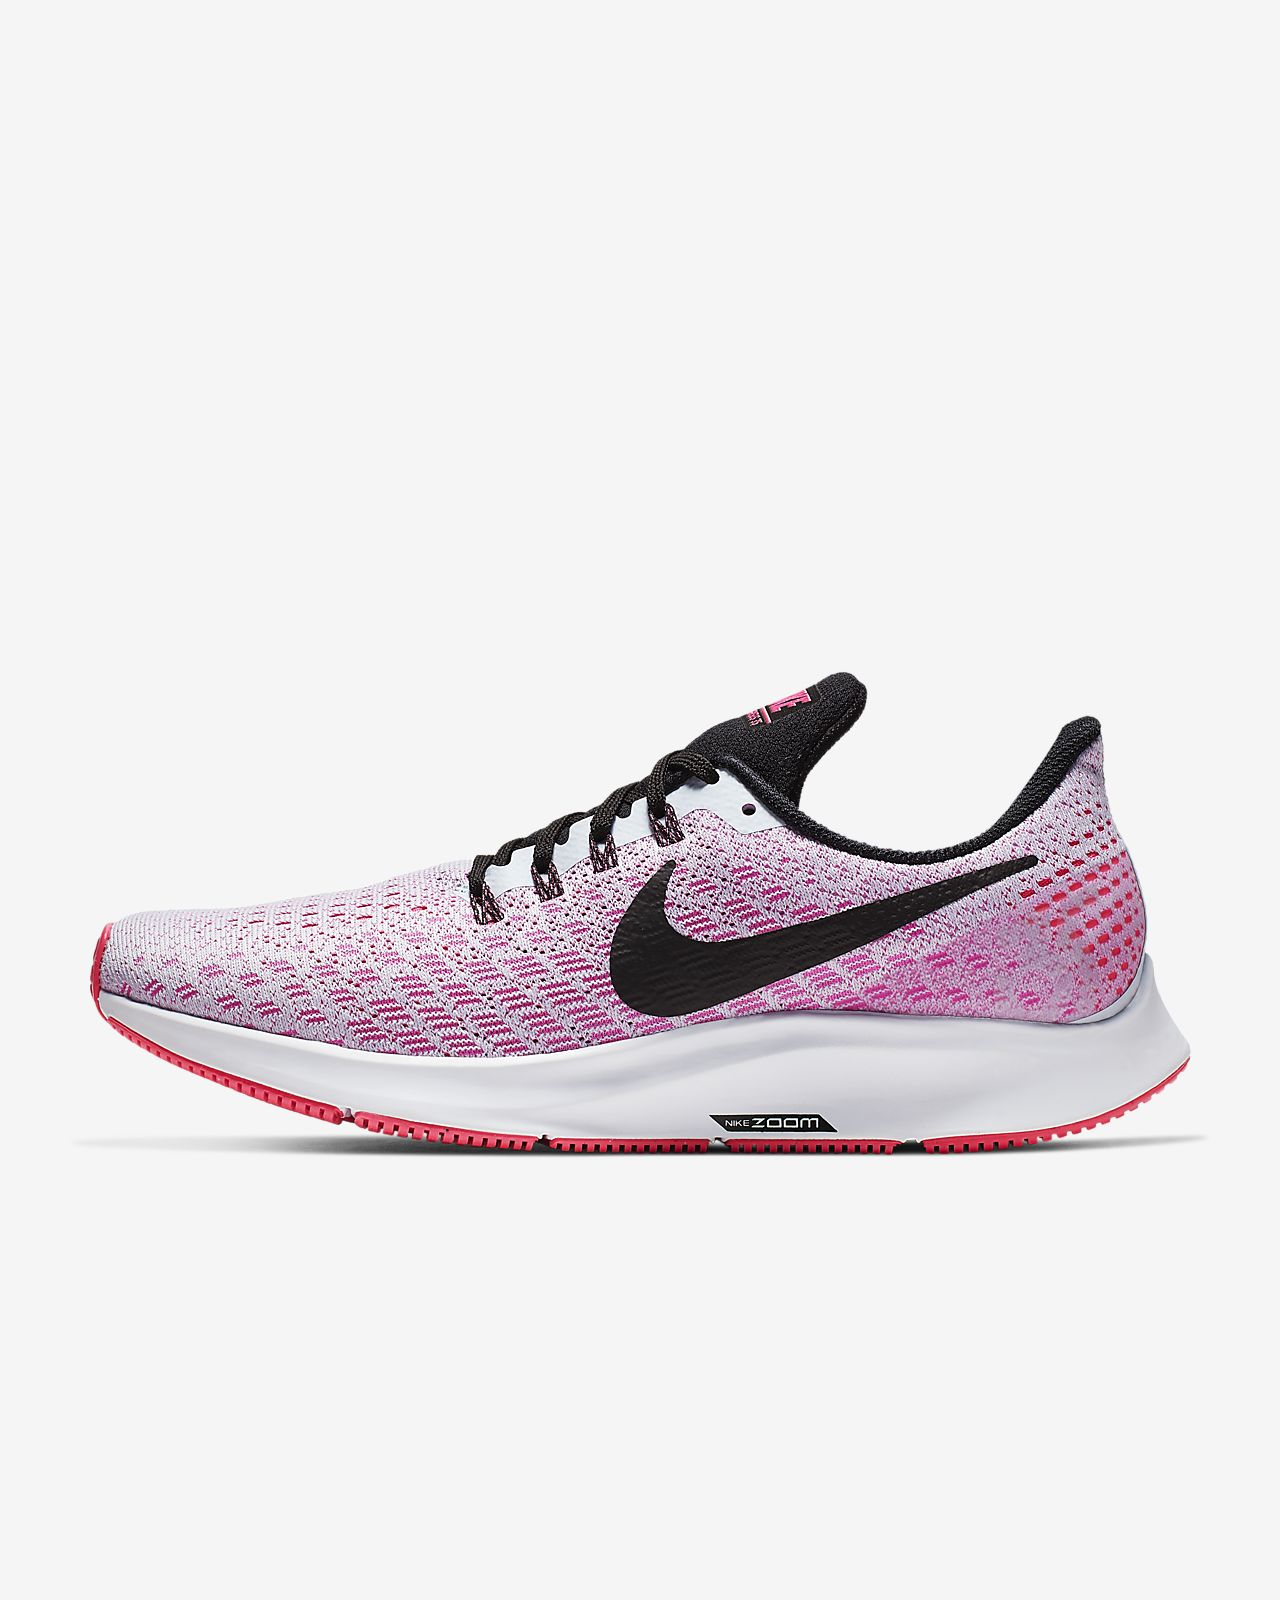 66d0c7d447e4 Nike Air Zoom Pegasus 35 Women s Running Shoe. Nike.com